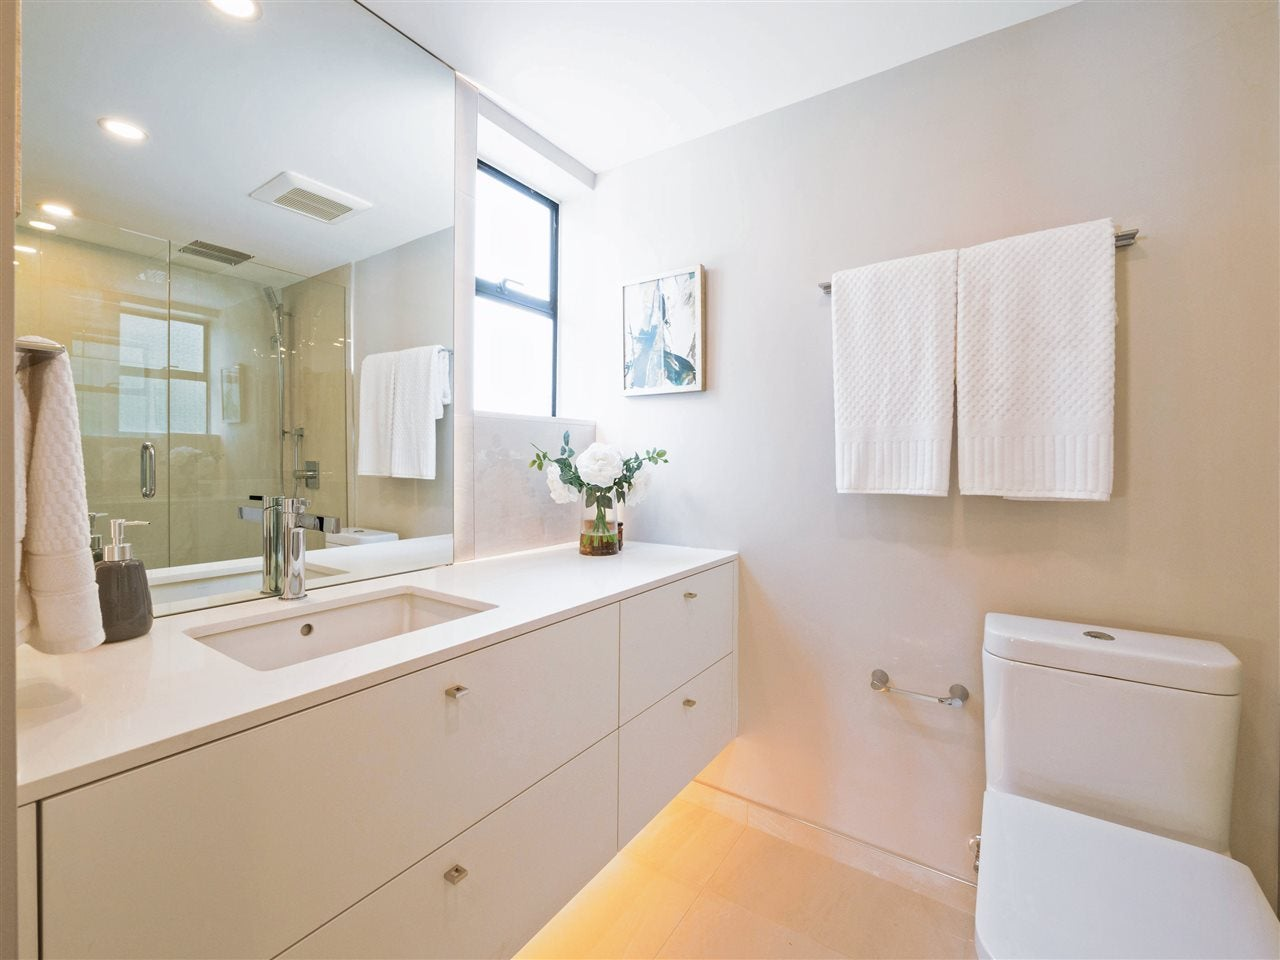 201 475 13TH STREET - Ambleside Apartment/Condo for sale, 3 Bedrooms (R2475640) - #19